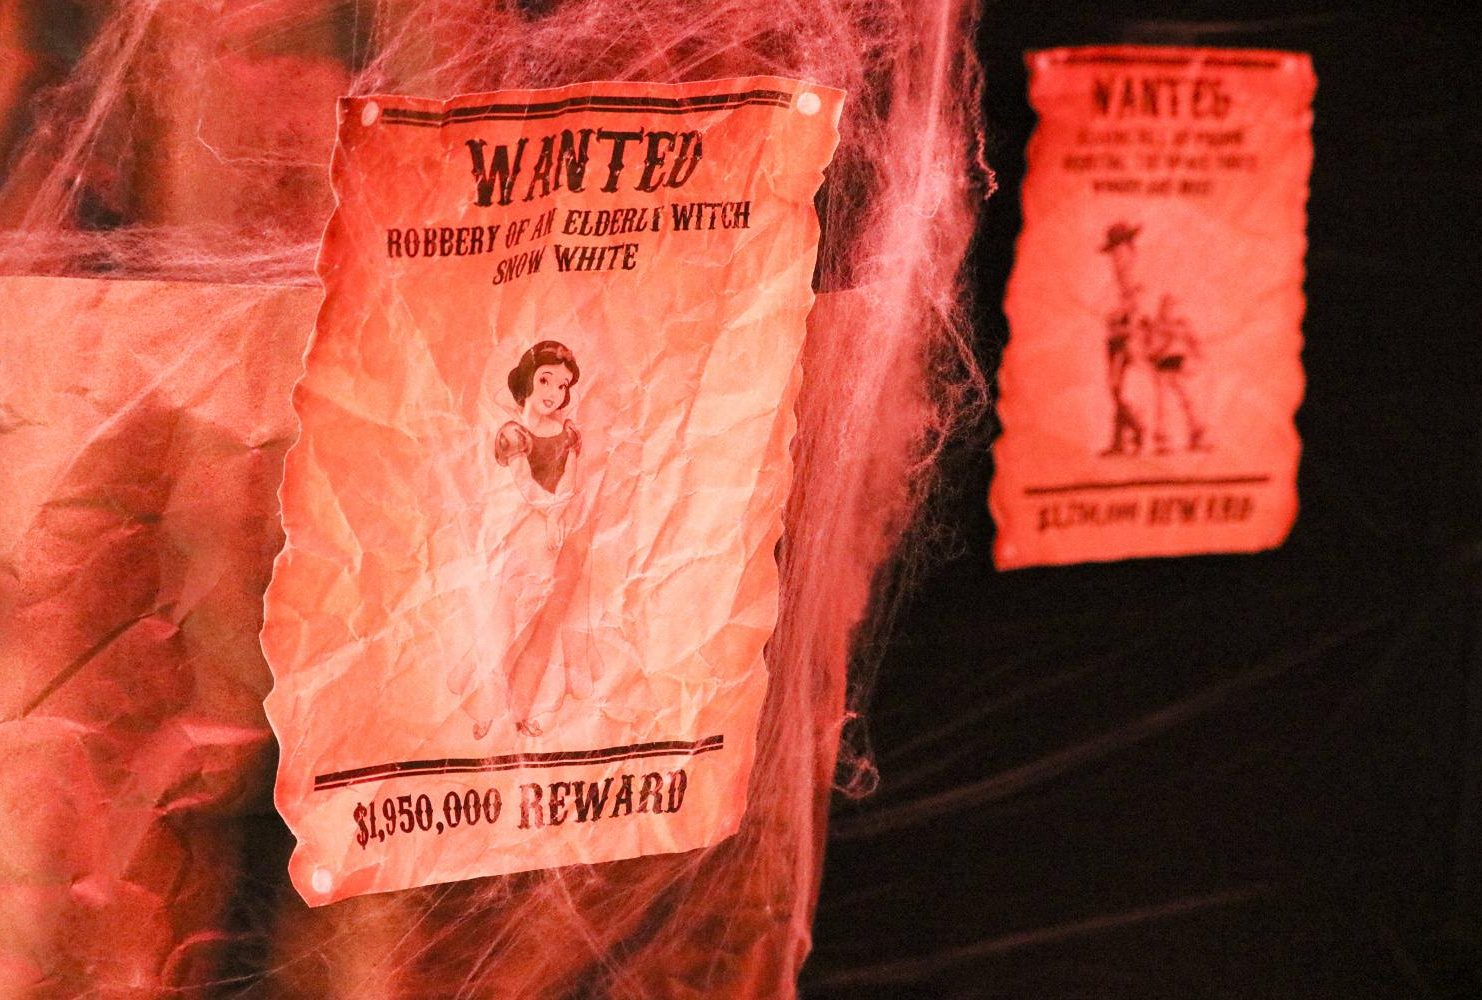 Haunted Forests and Disney Villains is the theme for the Veterans Resource Center. They have signs of wanted posters for Disney characters and spooky spider webs all around the walls. (Photo by Gabe Carlos)